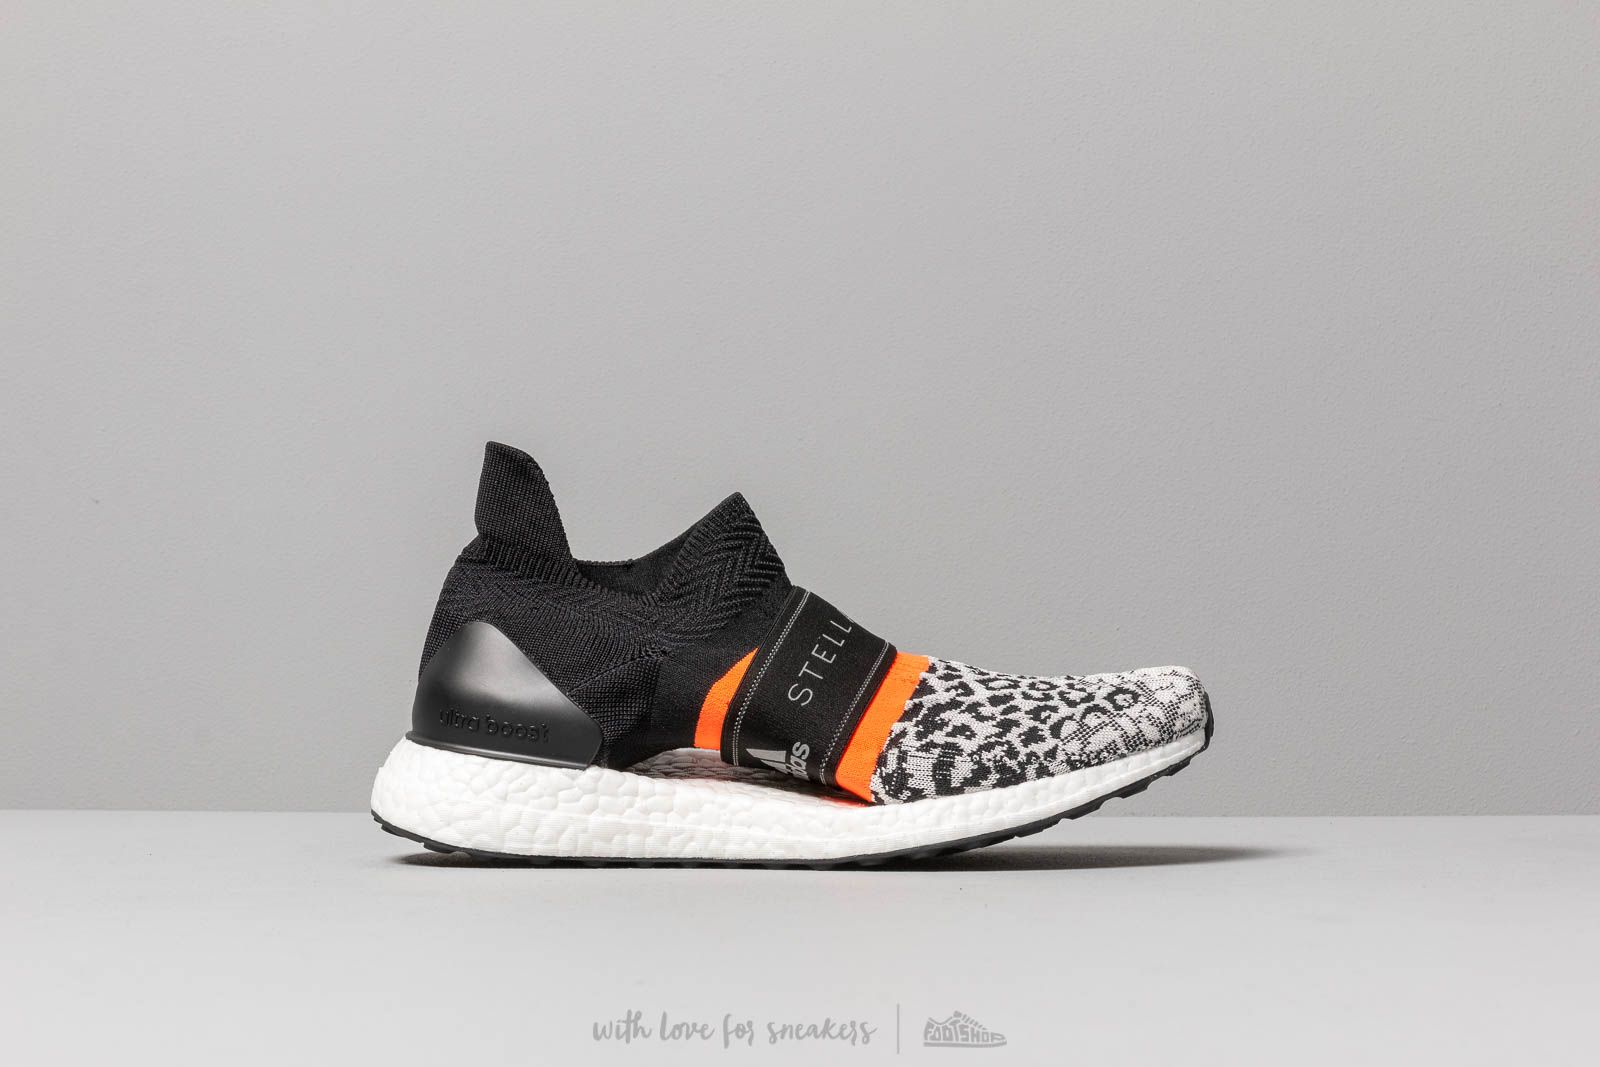 75f2010eca96d adidas x Stella McCartney Ultraboost X 3.D. S. Core Black  Chalk White   Solred